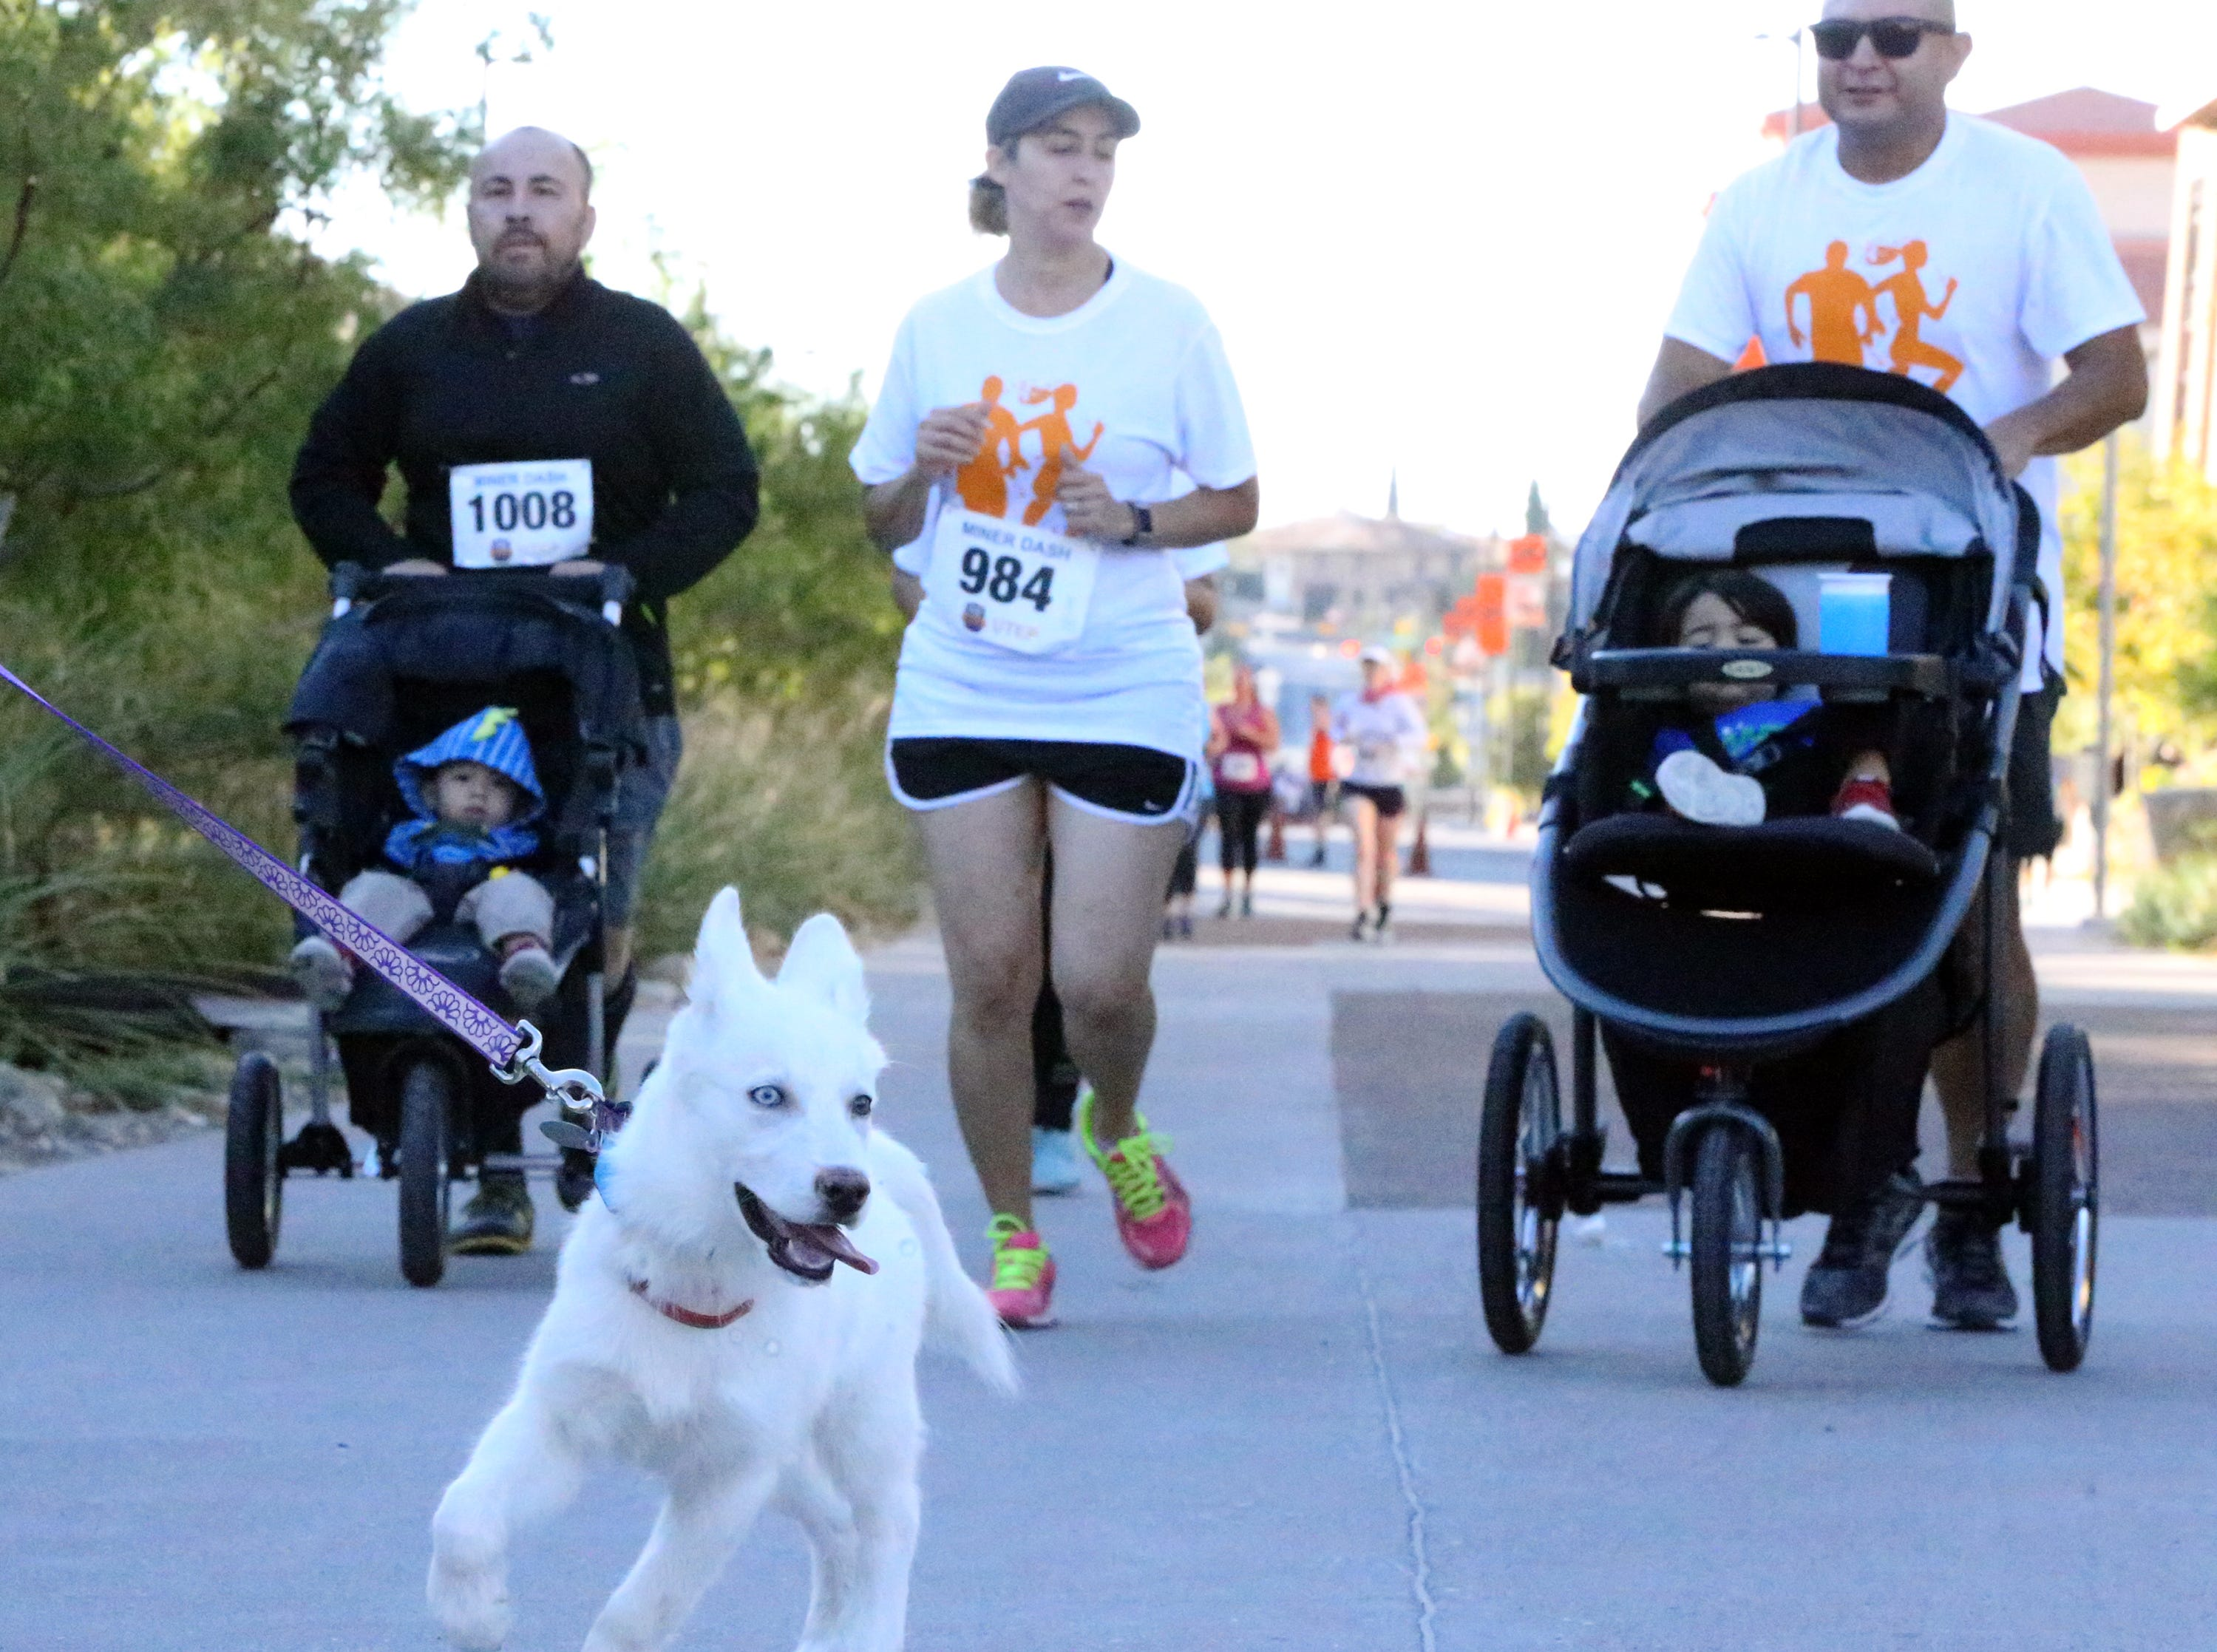 Some 4-legged friends also took part in the Miner Dash Sunday.